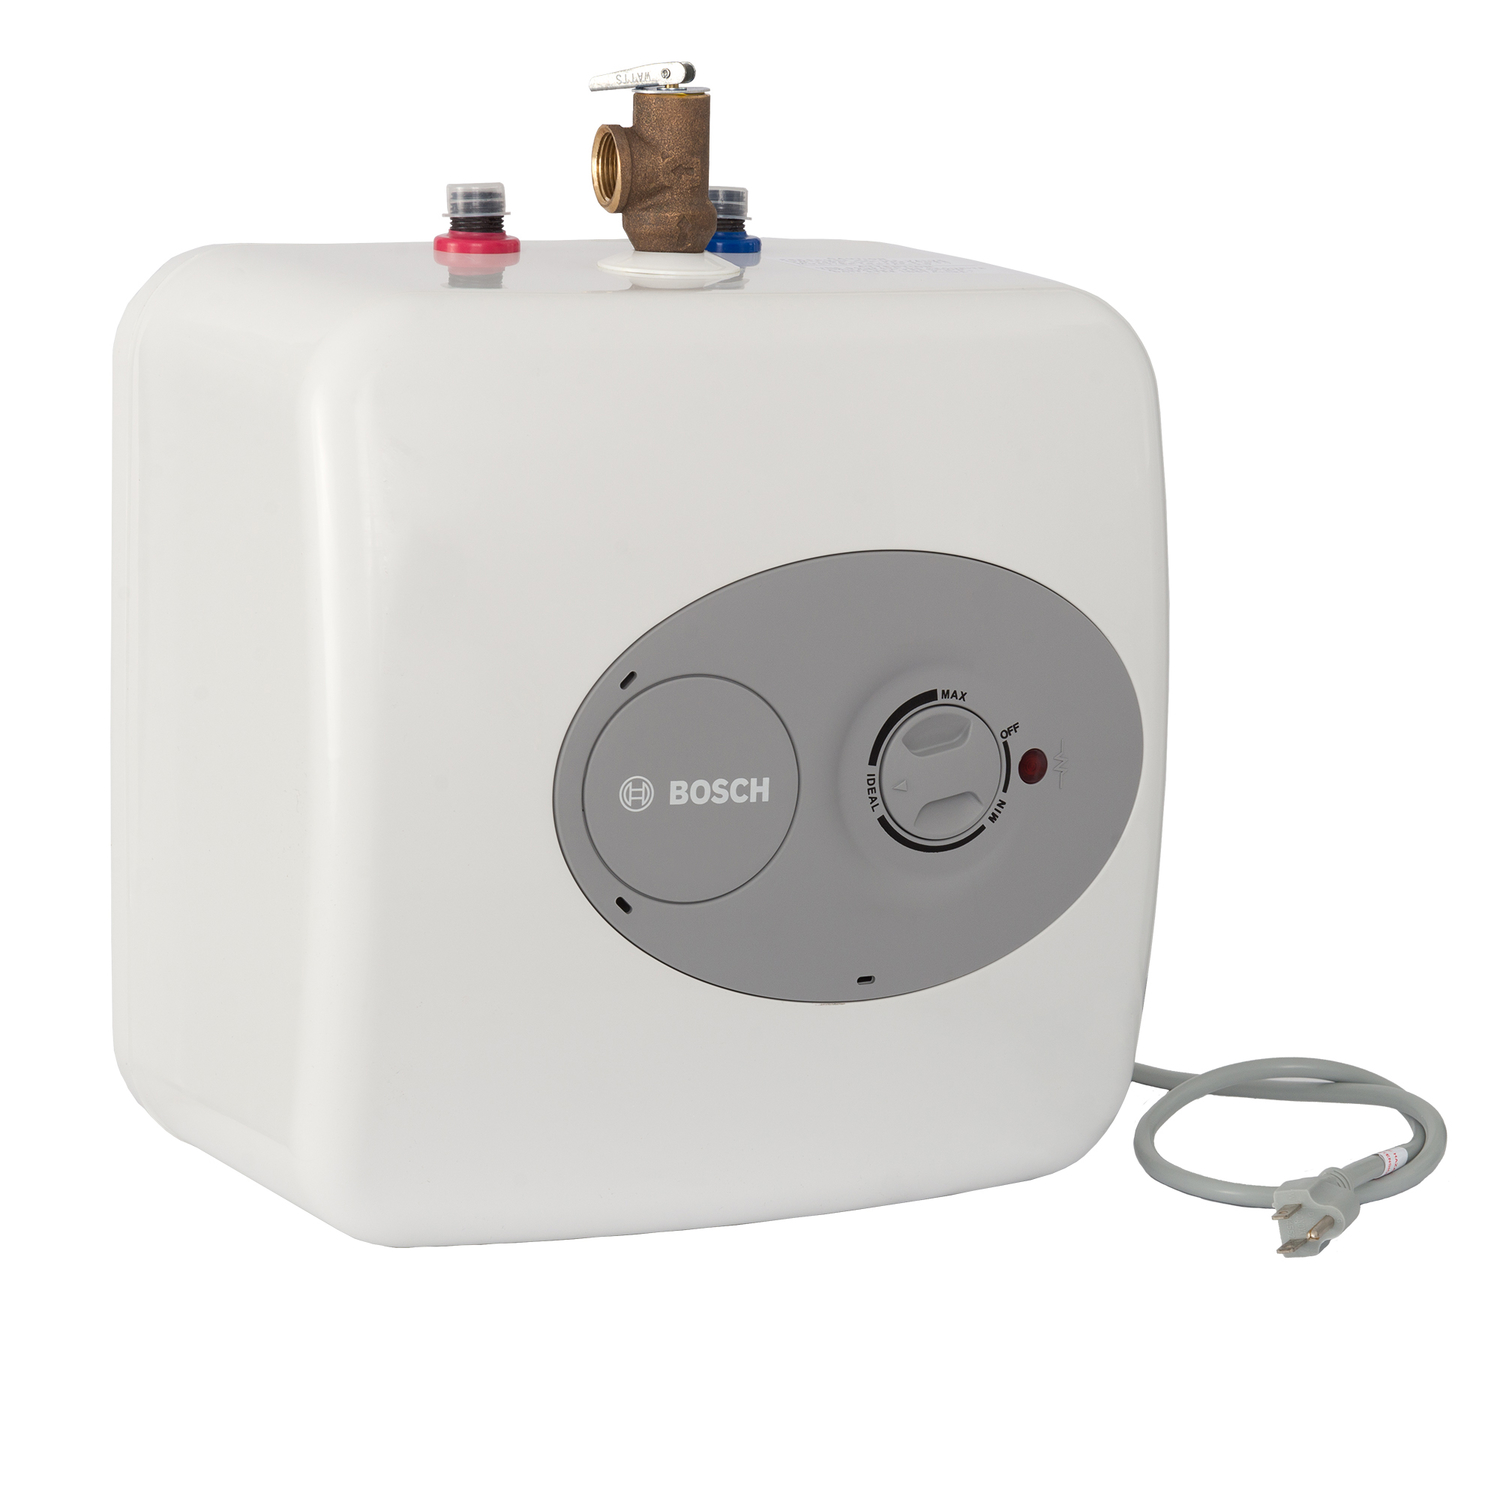 Bosch  Tronic 3000  Electric  Water Heater  13-3/4 in. H x 13-3/4 in. W 2.5 gal. 120 volts